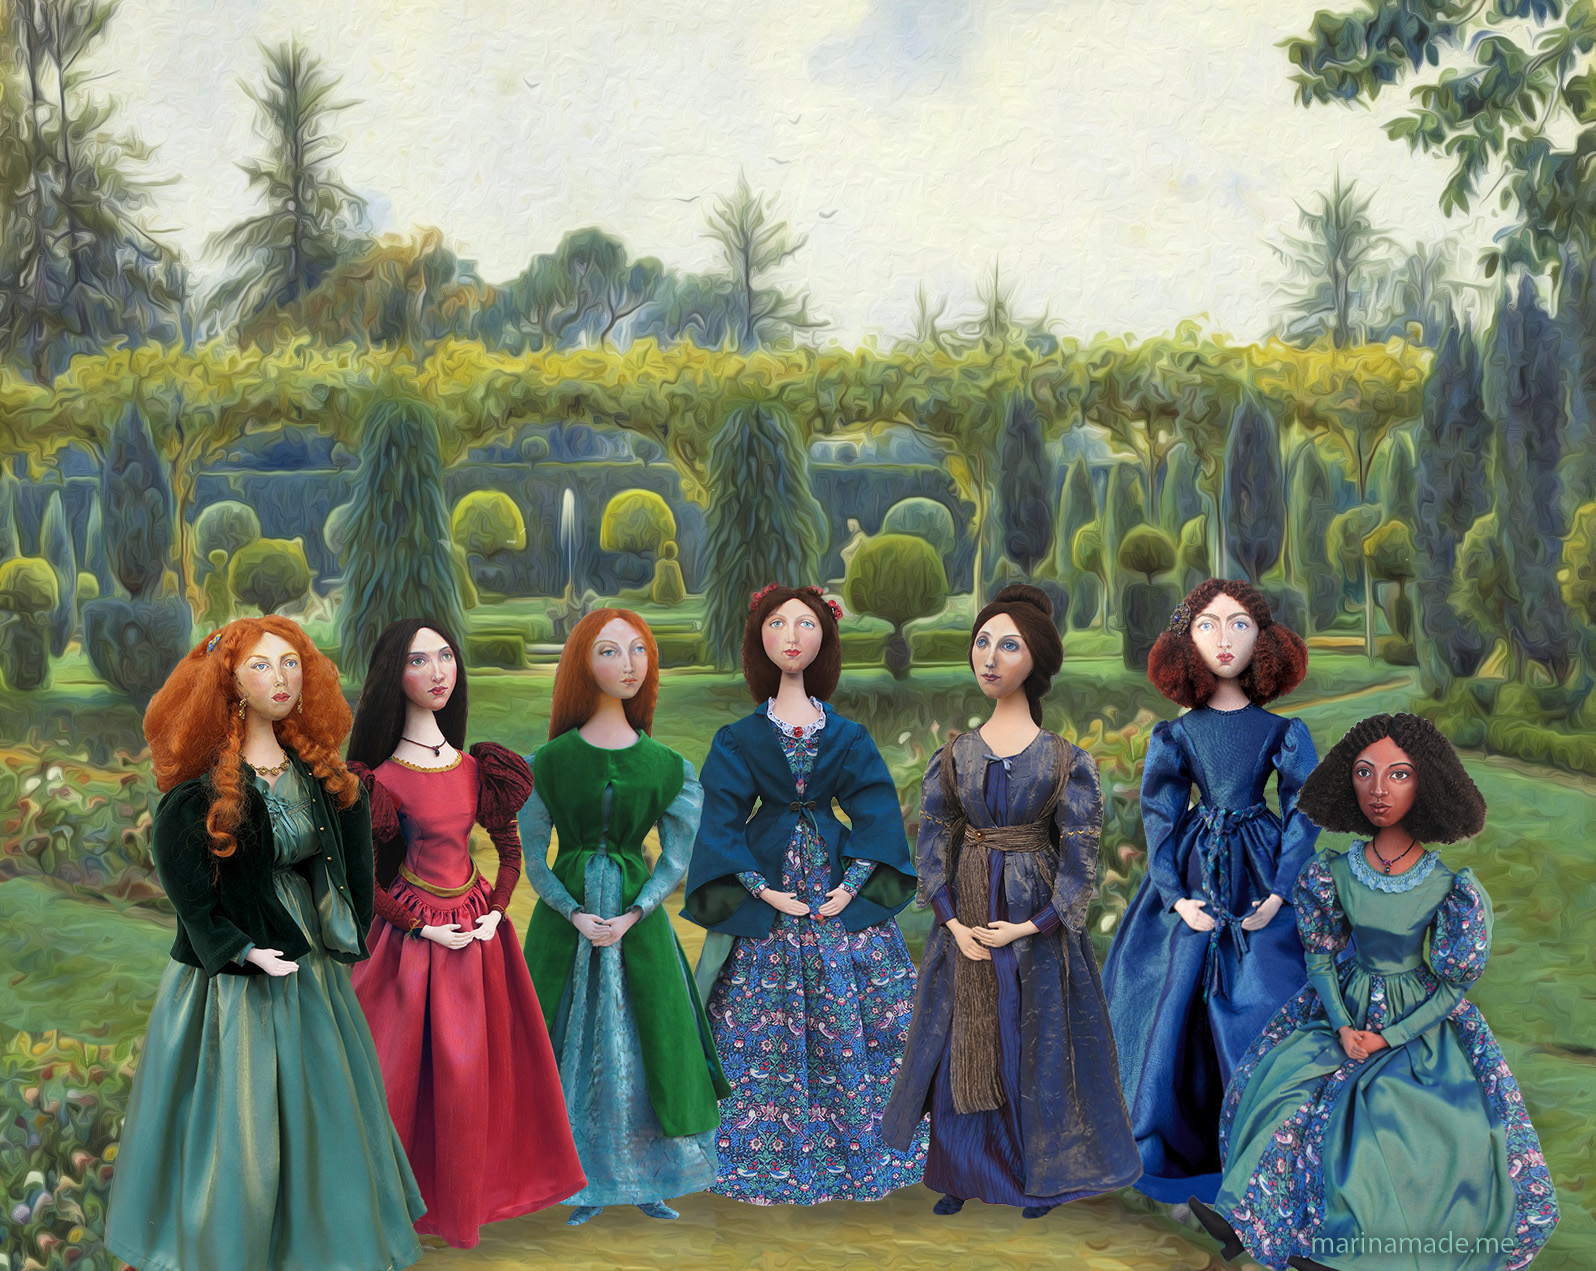 small-pre-raphaelite-muses-set-in-an-adapted-watercolour-by-ernest-arthur-rowe-1863-1922-e28098grey-day-brockenhurst-1